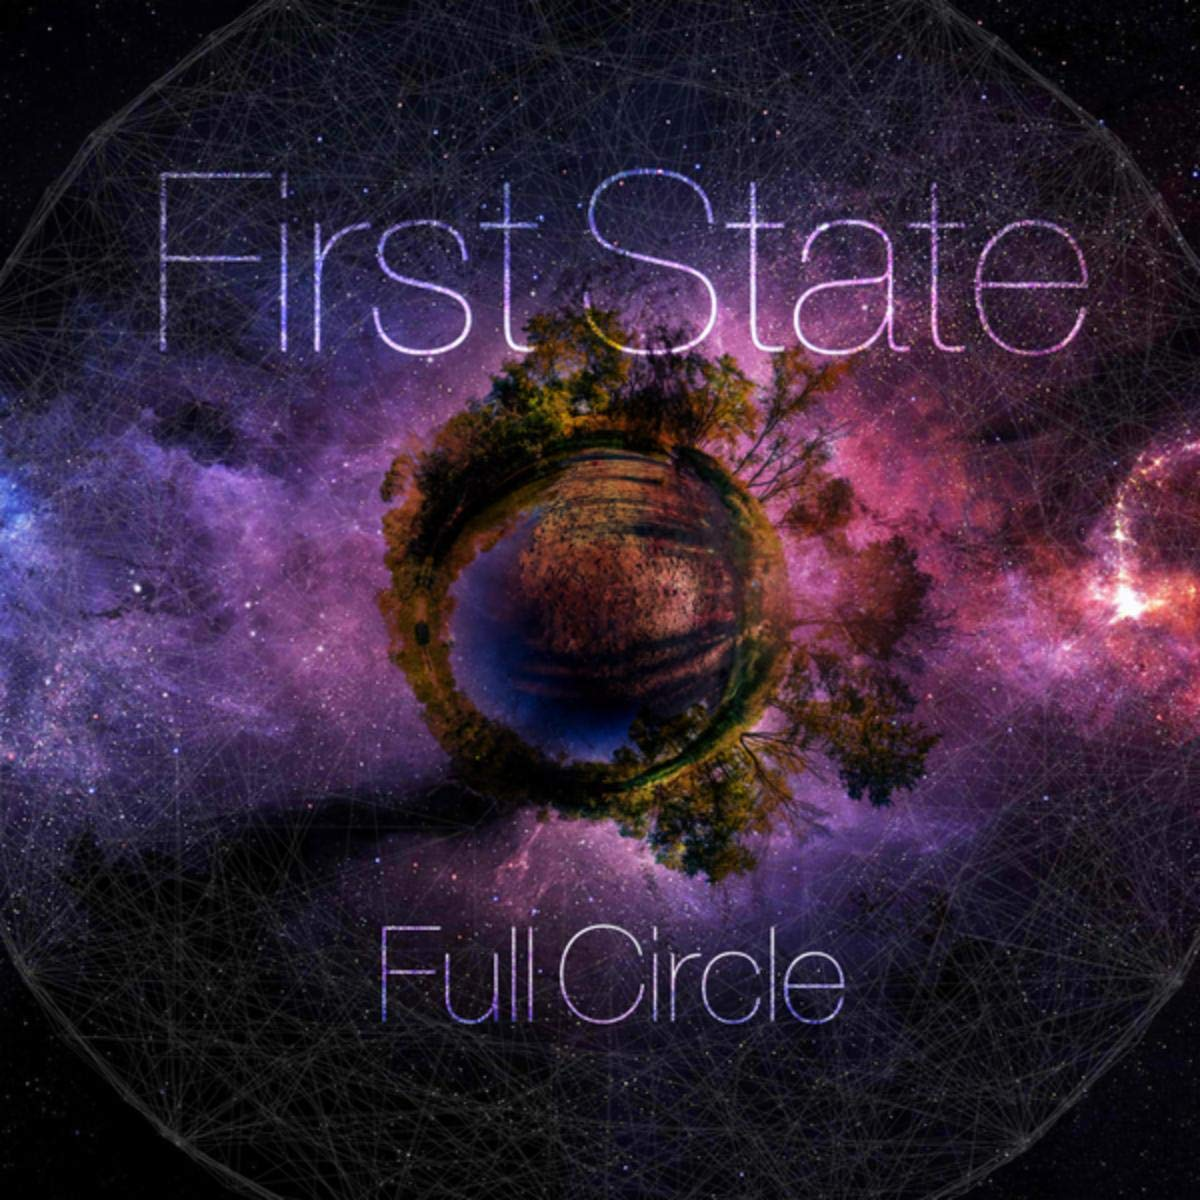 First State - Full Circle (2014) [FLAC] Download